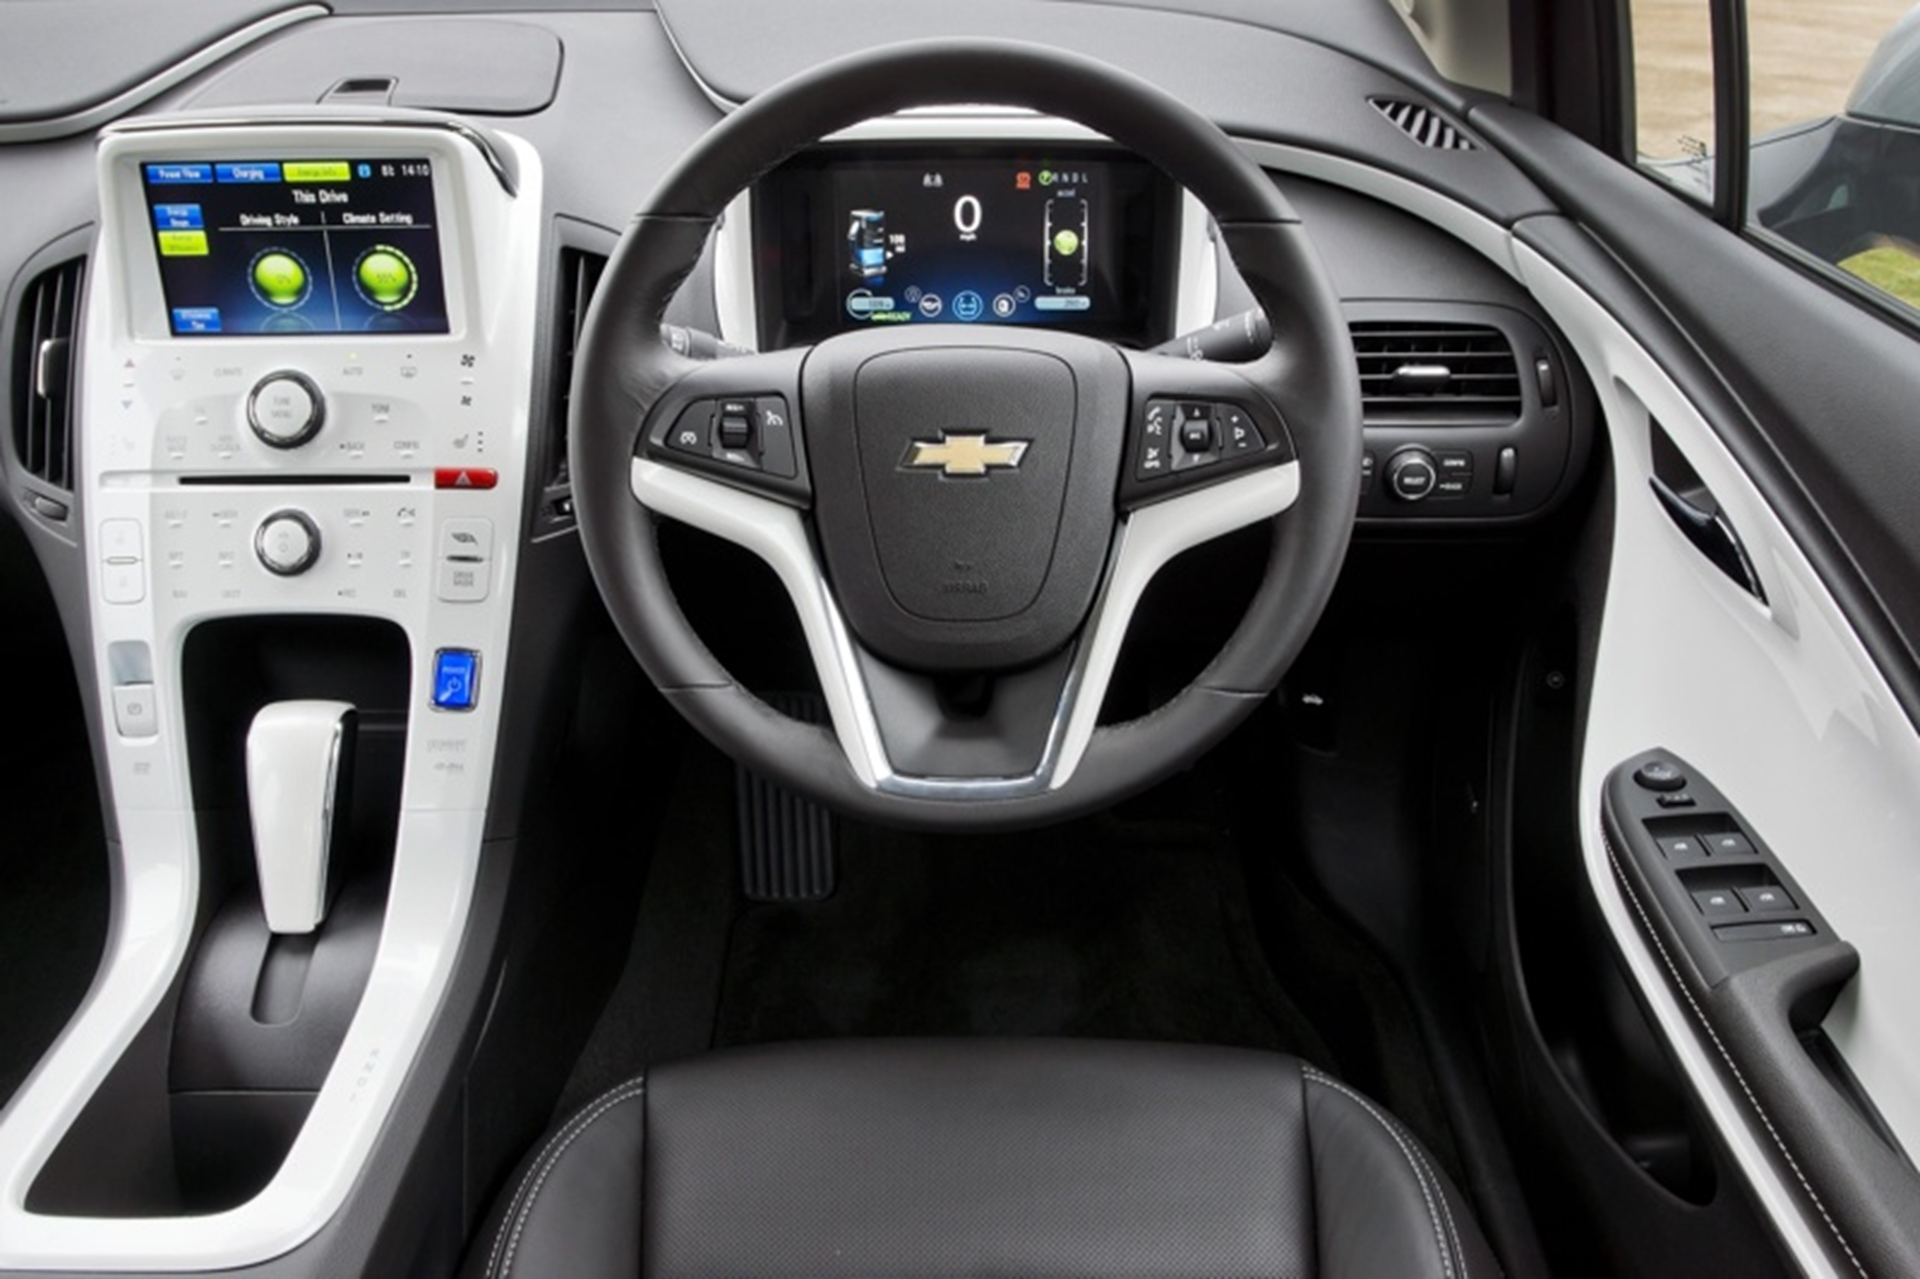 Chevrolet Volt Inside